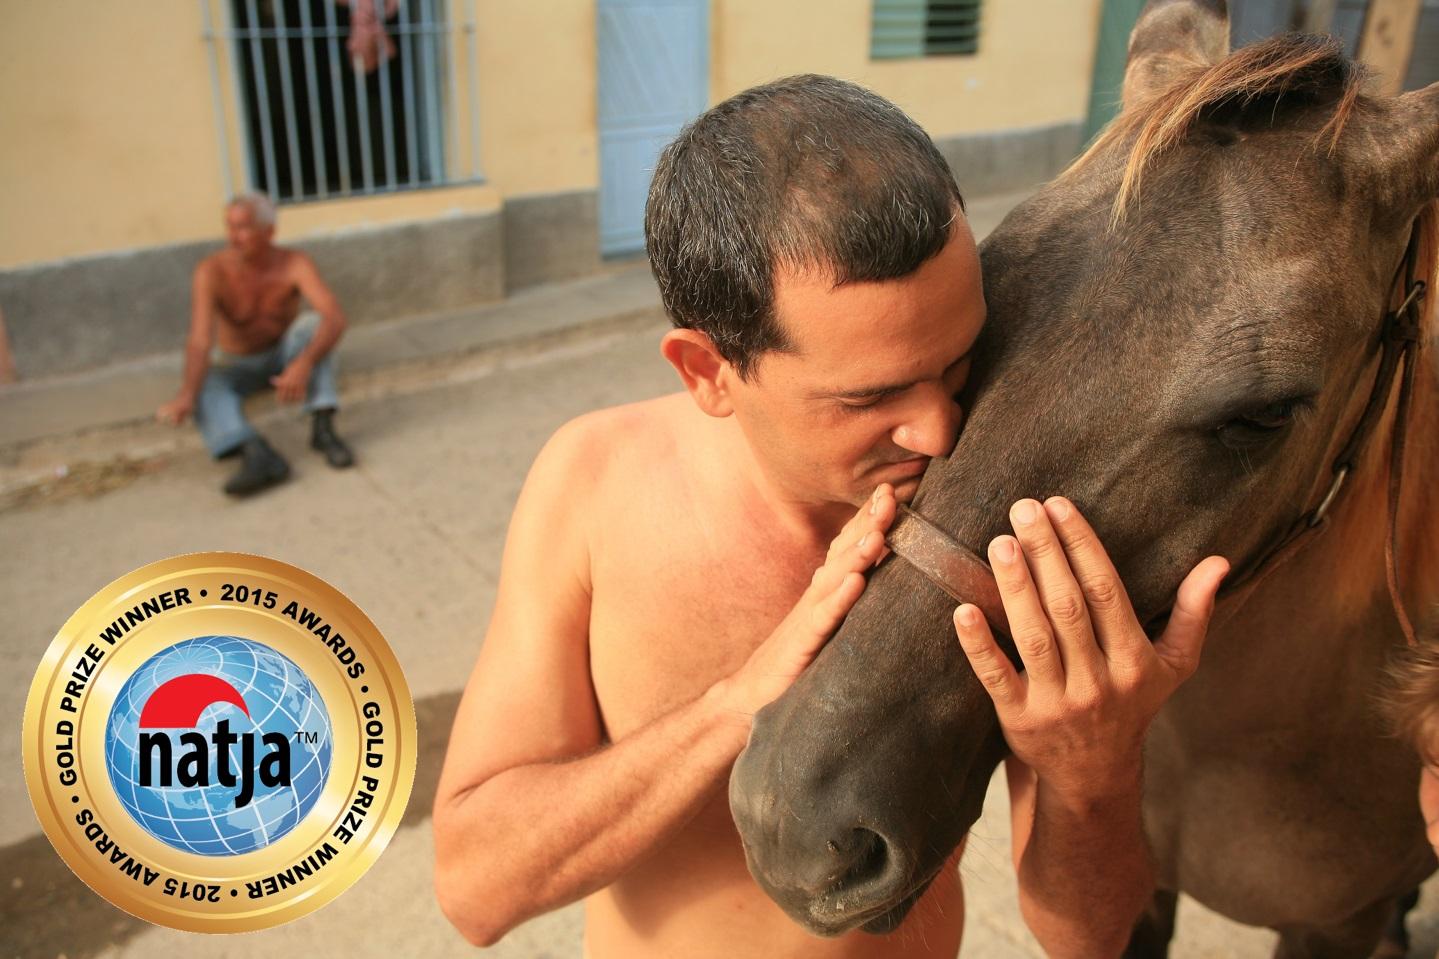 NATJA photo award, Julio Munoz and horse in Cuba, copyright Christopher P Baker